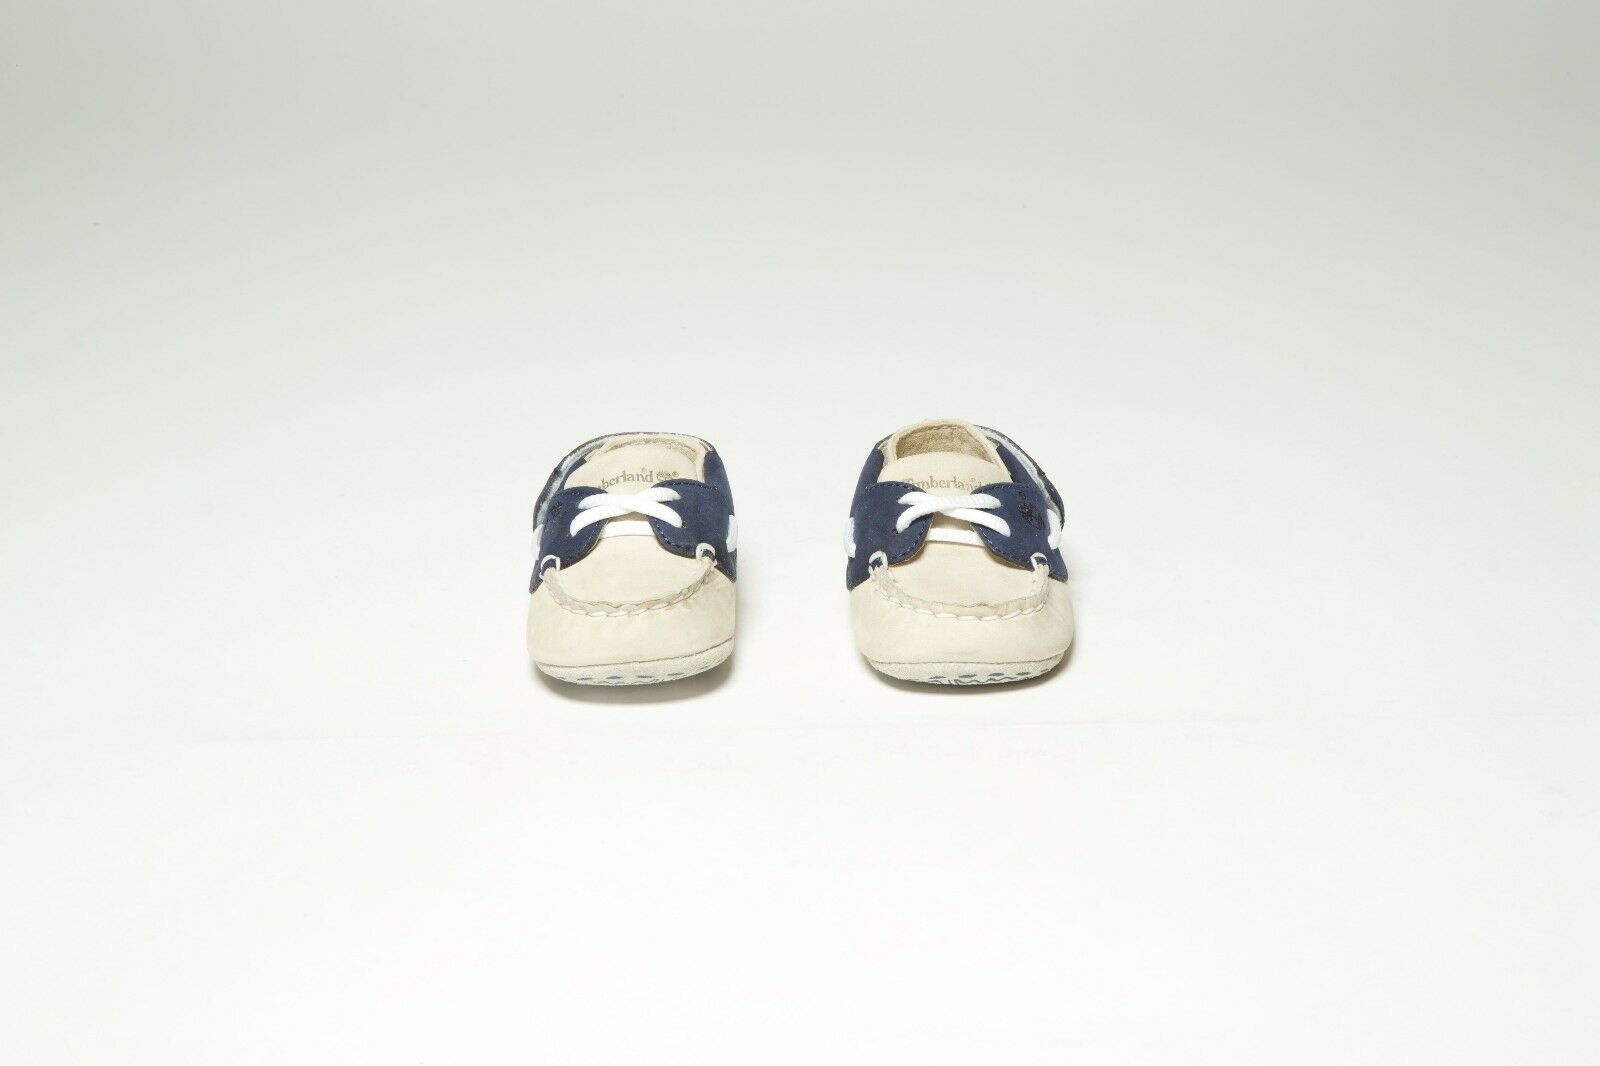 VINTAGE TIMBERLAND INFANT BOATIE 10410 BONE WHITE/NAVY 1